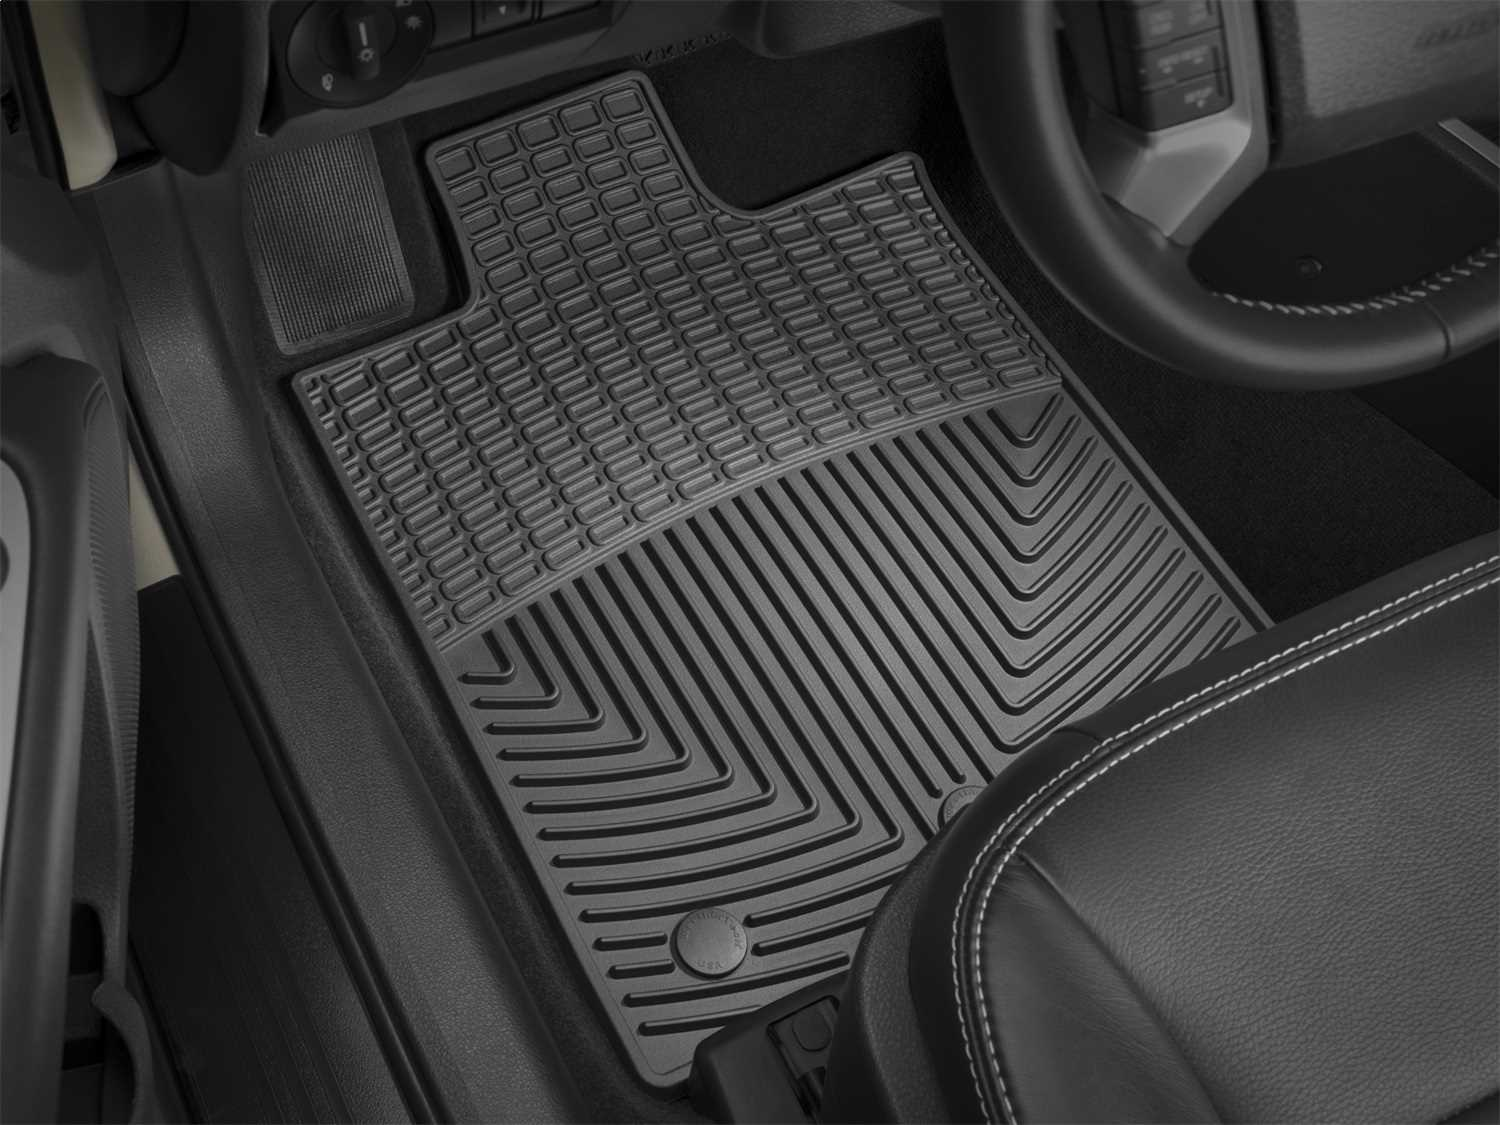 WTFB983984 WeatherTech All Weather Floor Mats